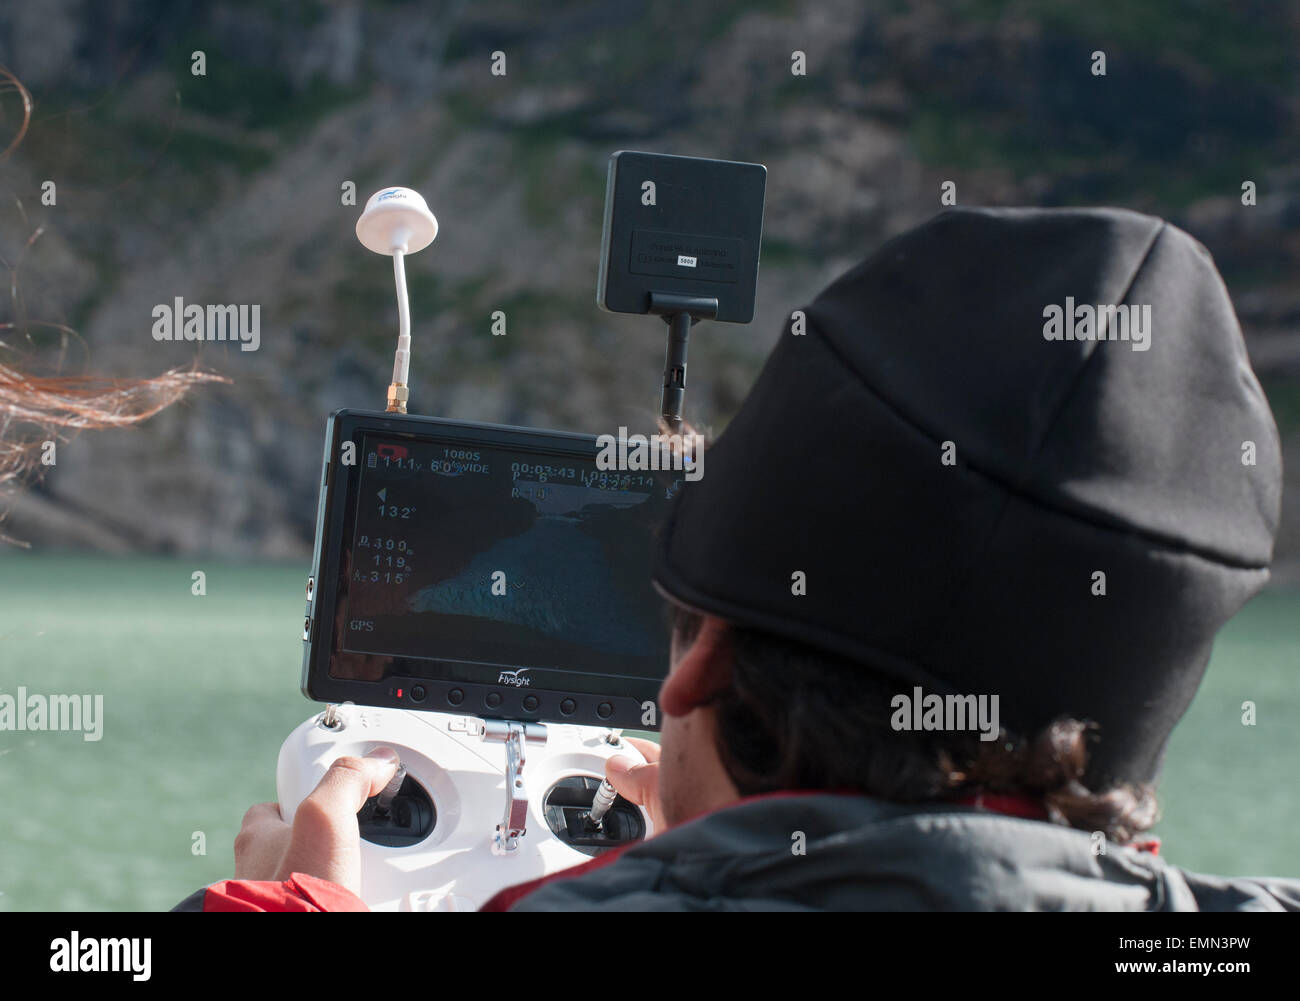 Man using a camera drone at Serrano Glacier in a Chilean national park - Stock Image